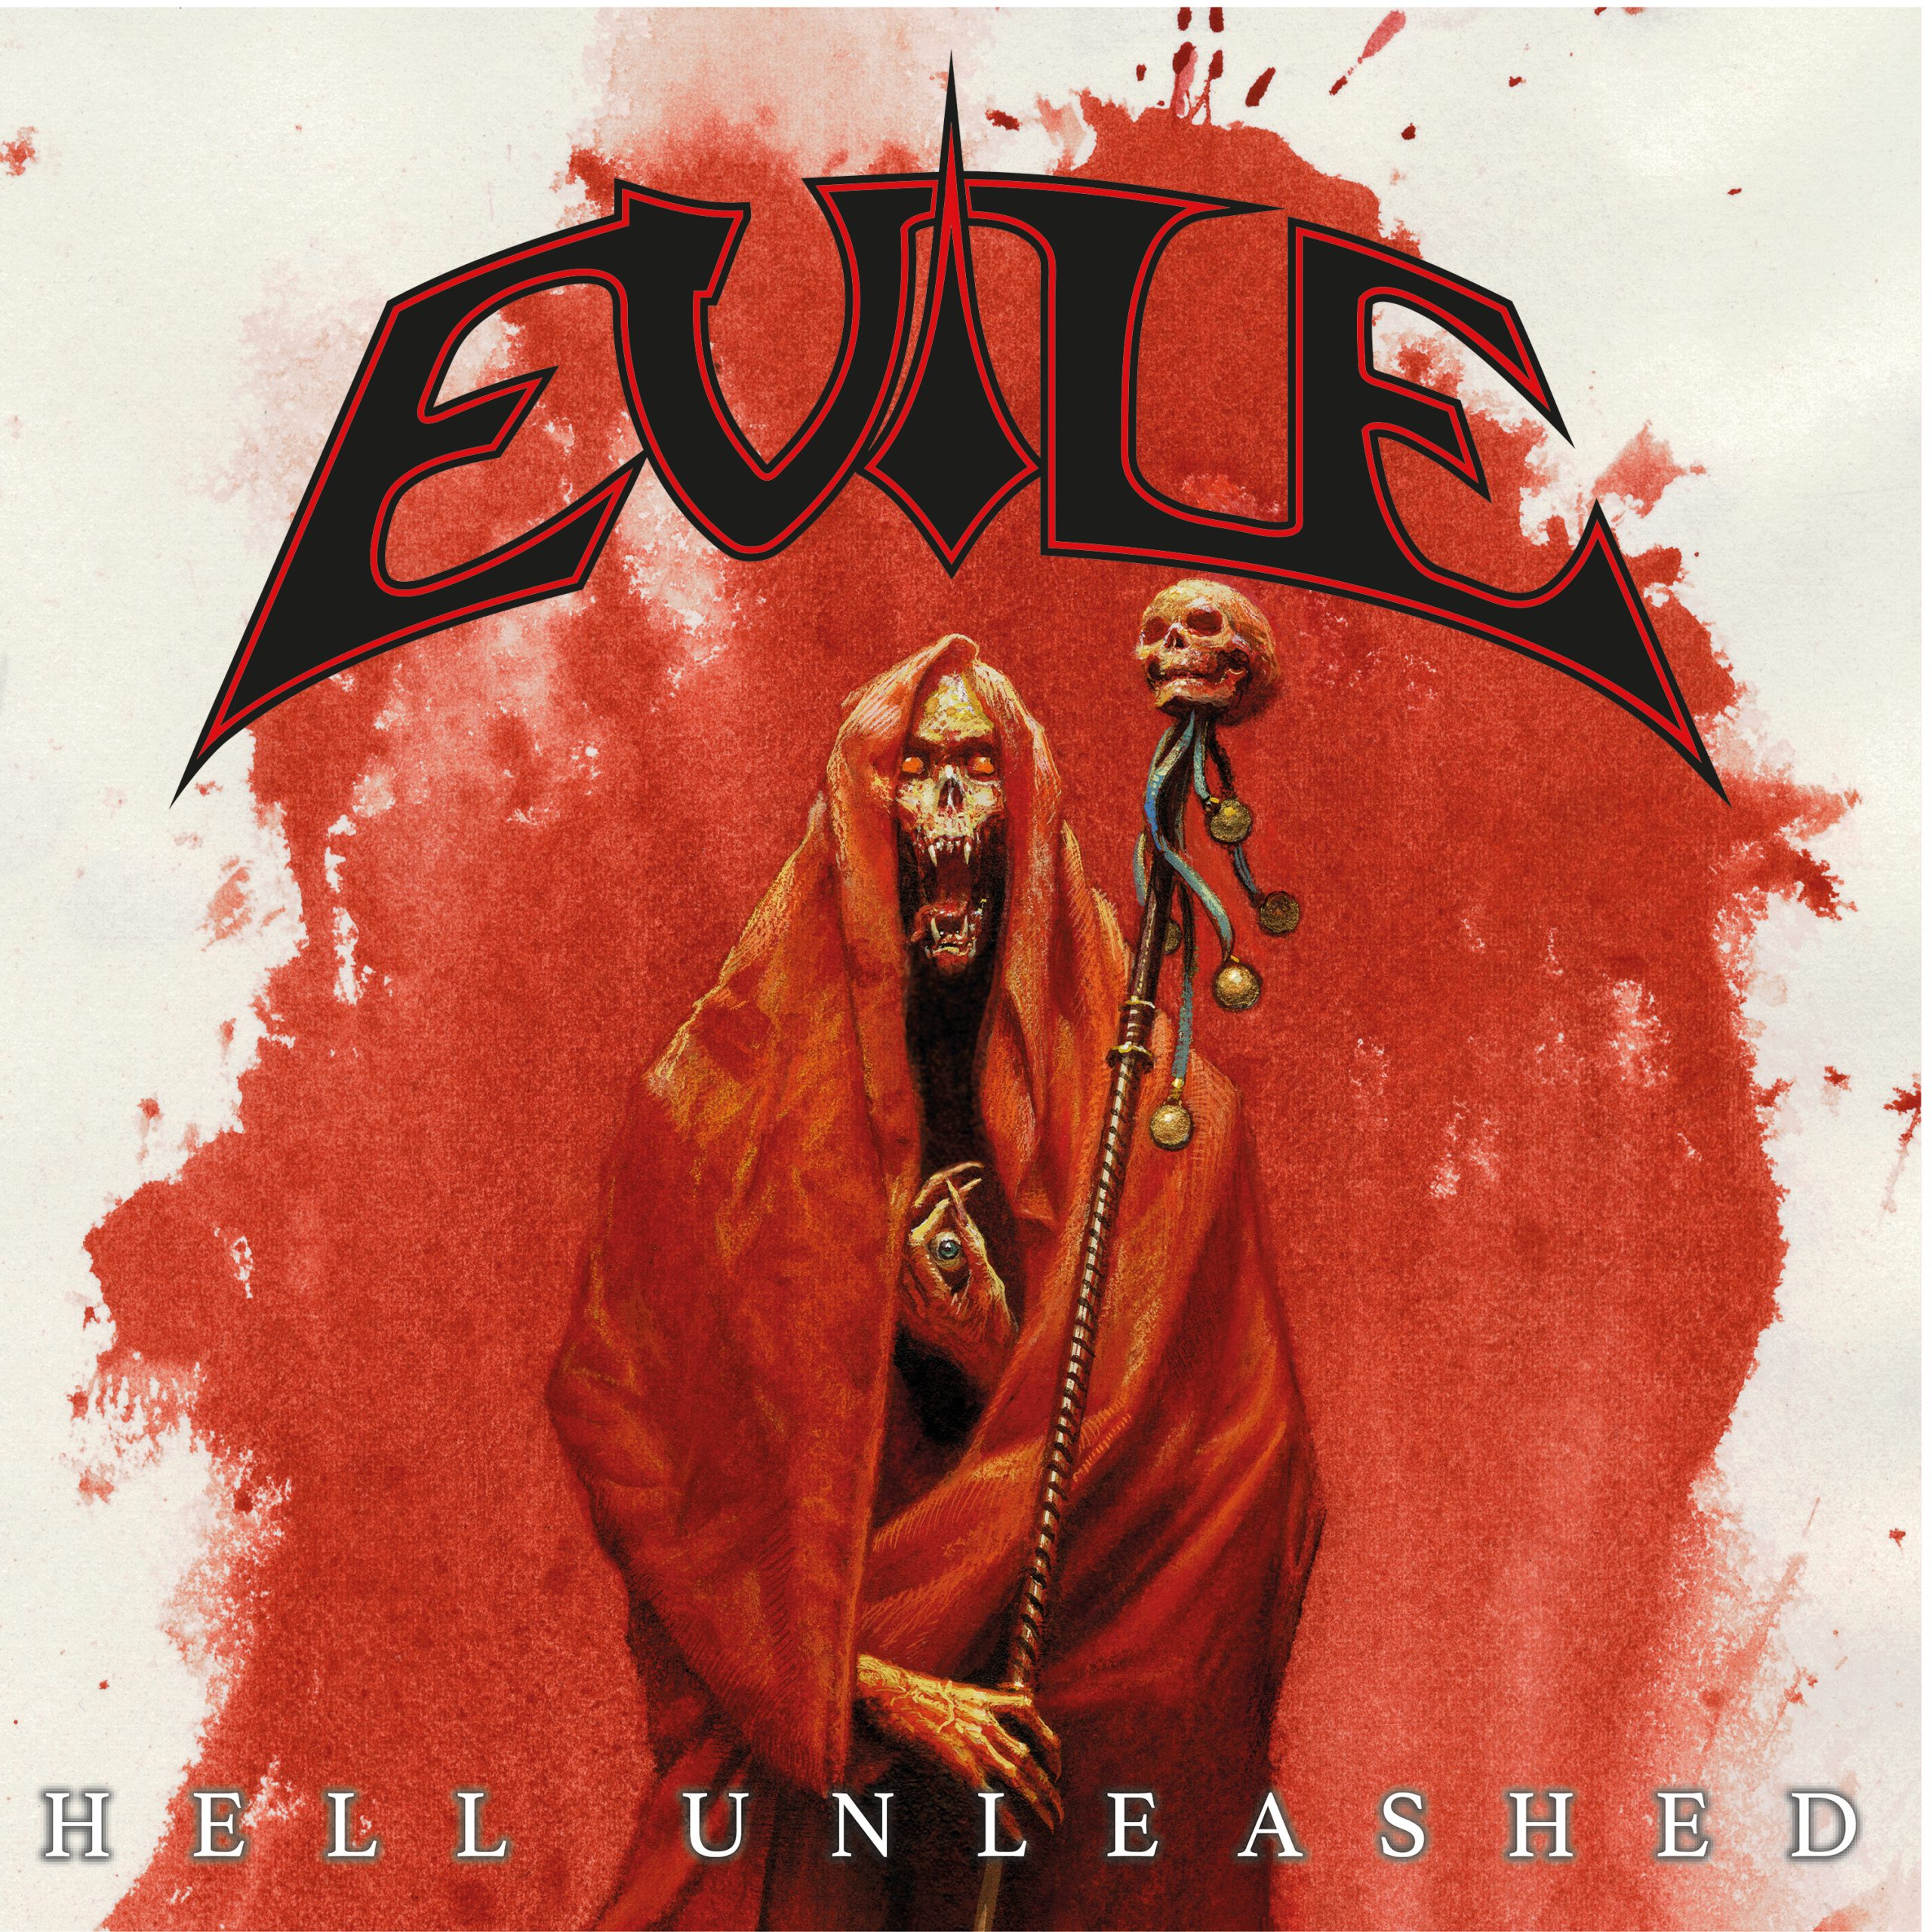 Evile hell unleashed artwork